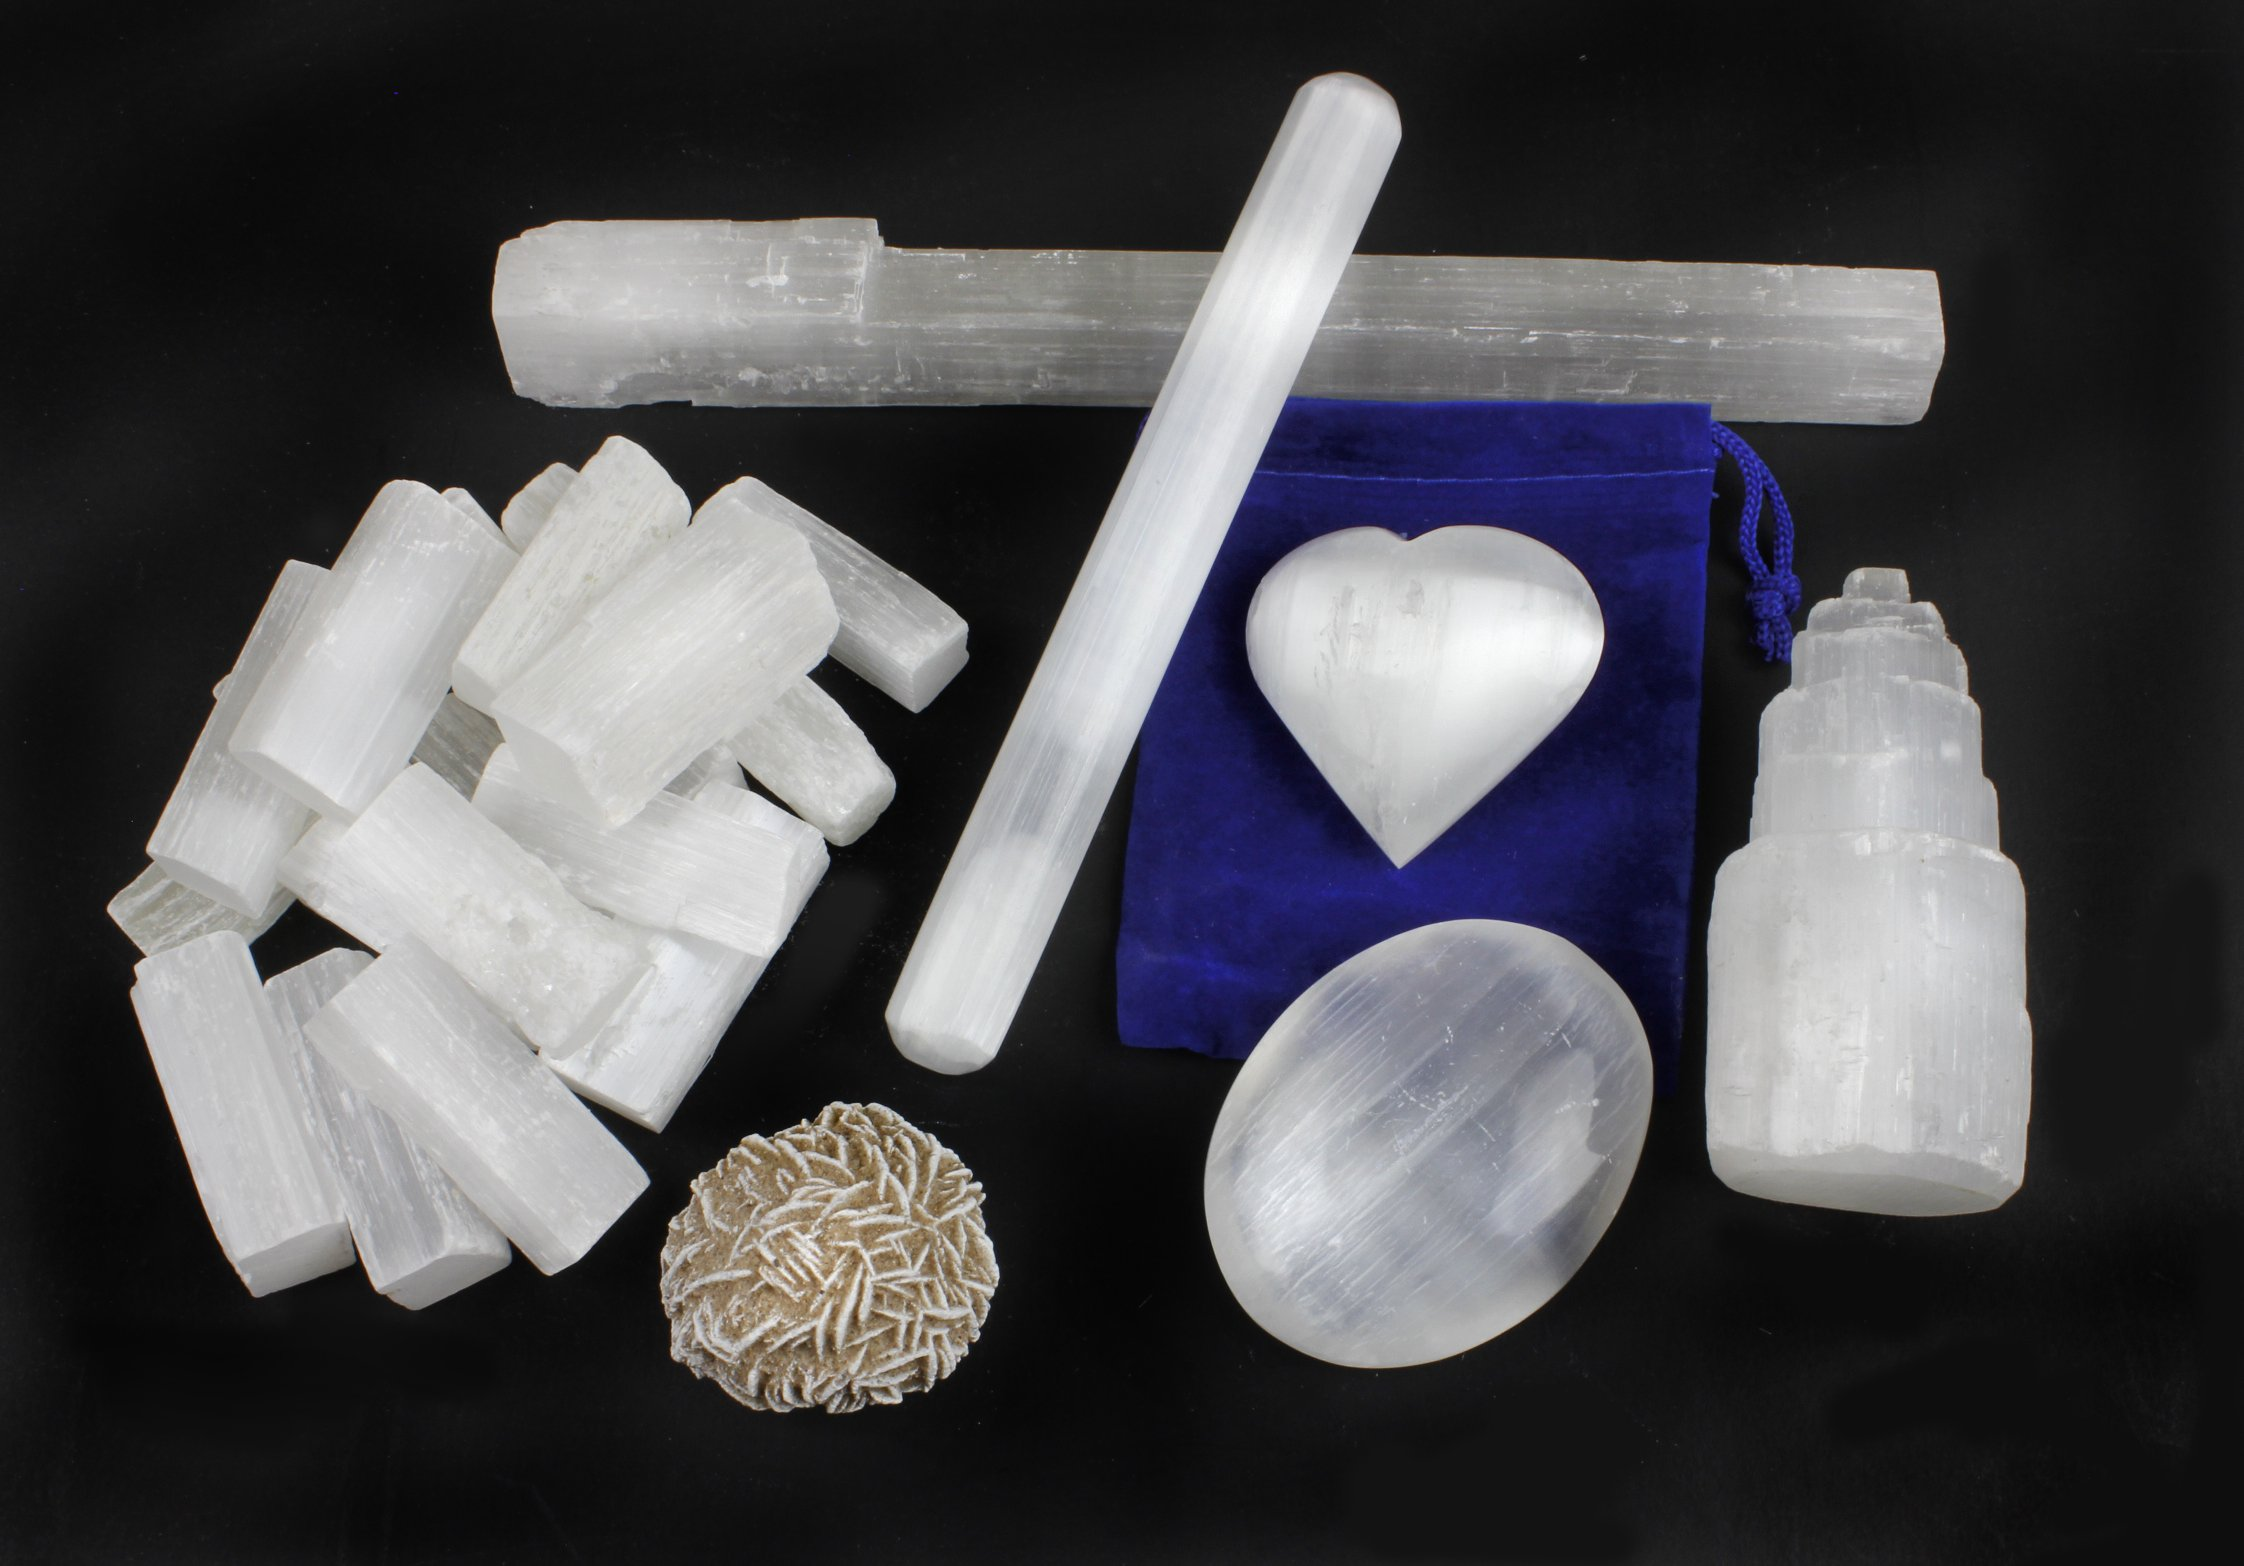 Selenite Protection Collection: 1.5'' Sticks (17-20 pcs), Palm Stone, Heart, Tower, 8'' Stick, 5.5'' Massage Wand, Desert Rose stone, Educational ID card, Healing, Chakra, Good Energy, Dancing Bear brand by Dancing Bear